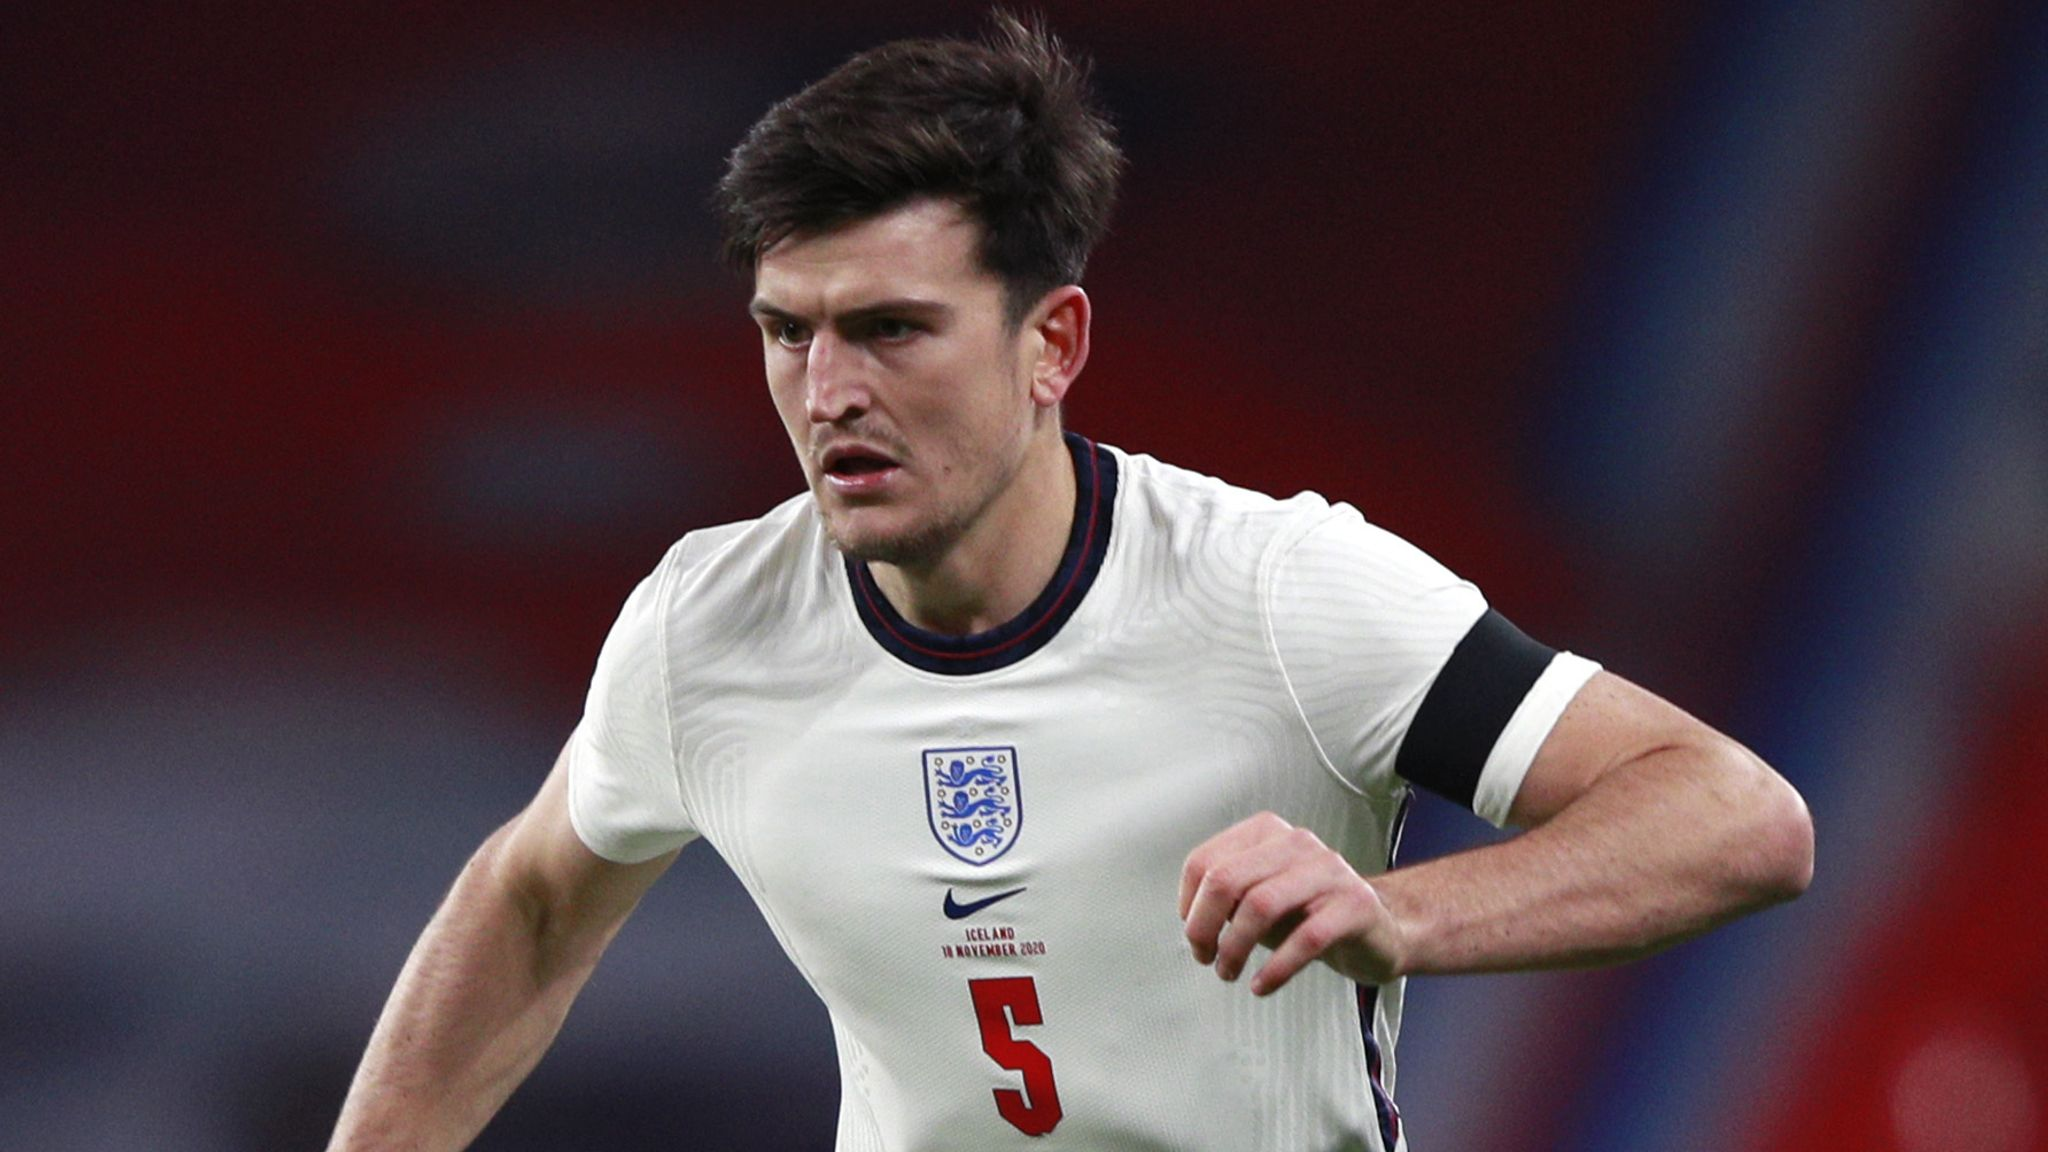 Euro 2020: Maguire Declares Self Fit For Scotland Game